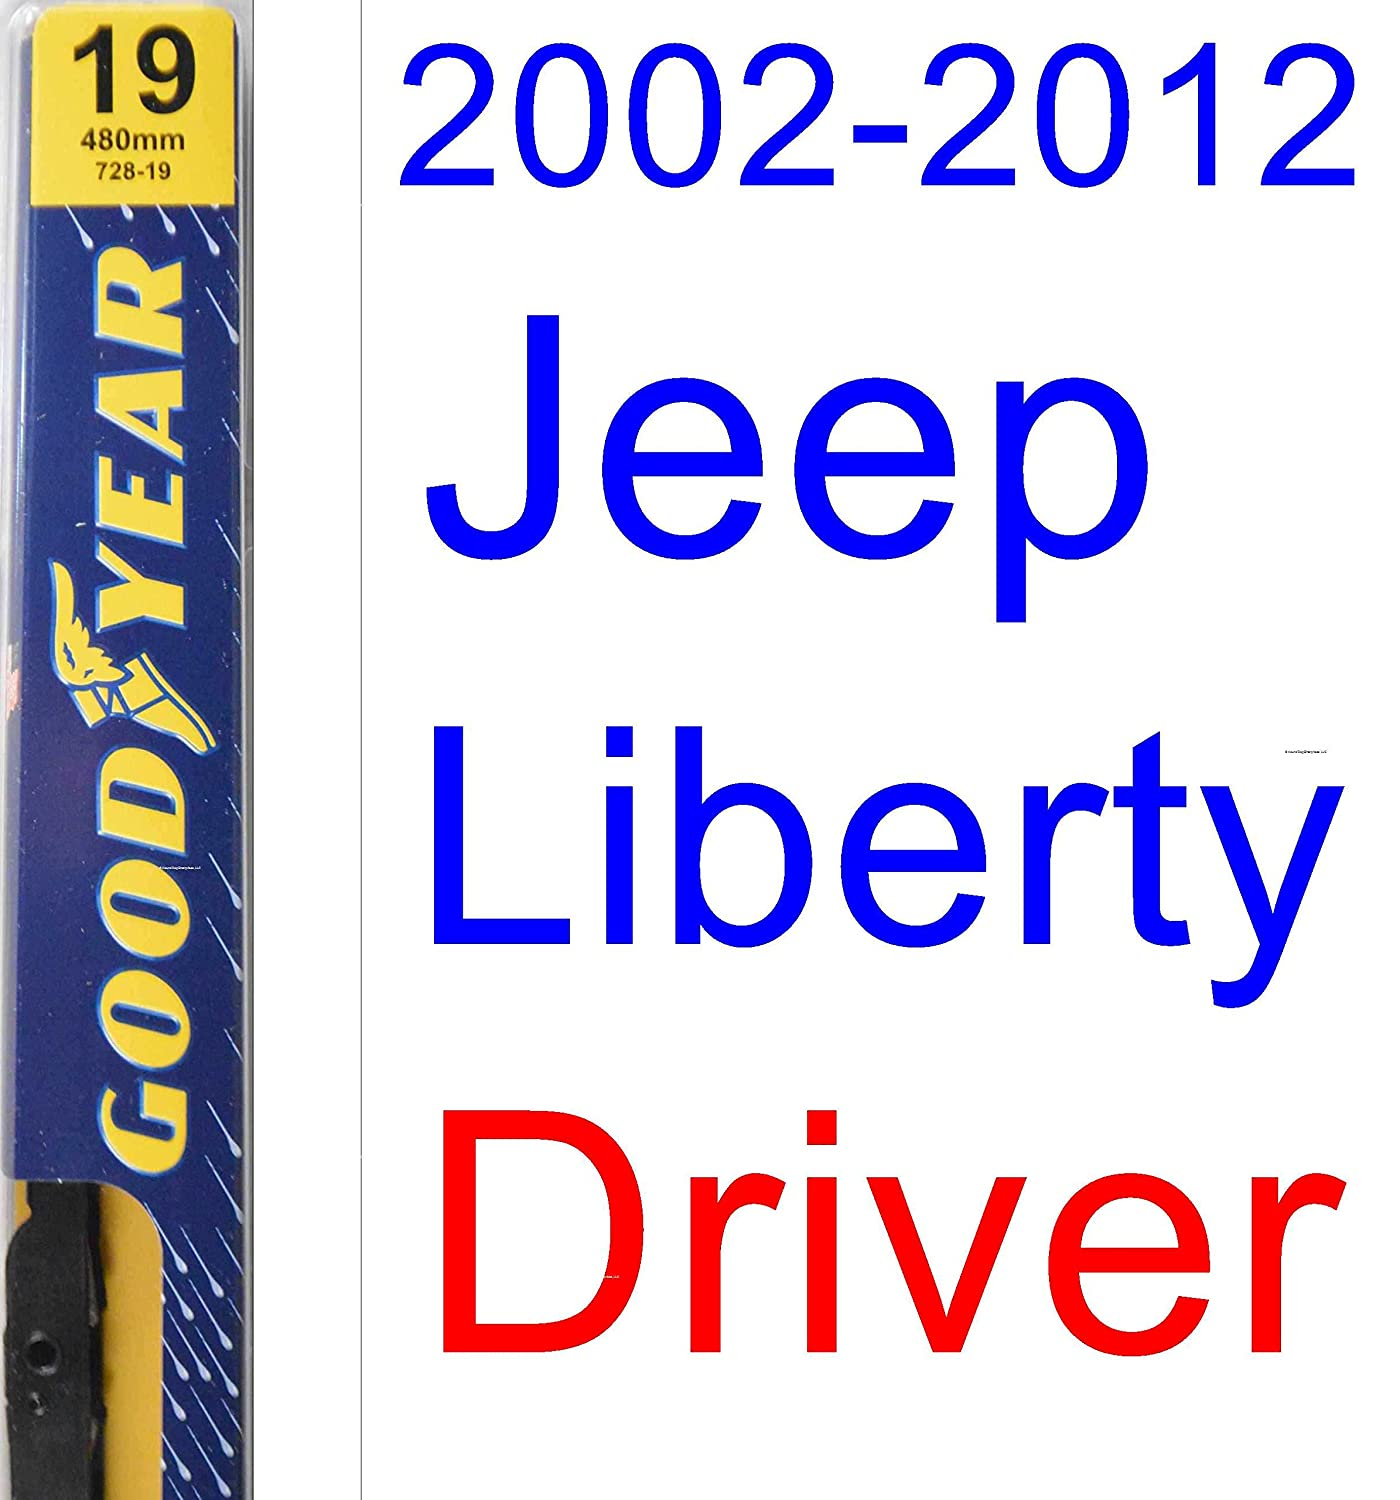 2002-2012 Jeep Liberty Replacement Wiper Blade Set/Kit (Set of 3 Blades) (Goodyear Wiper Blades-Premium) ...